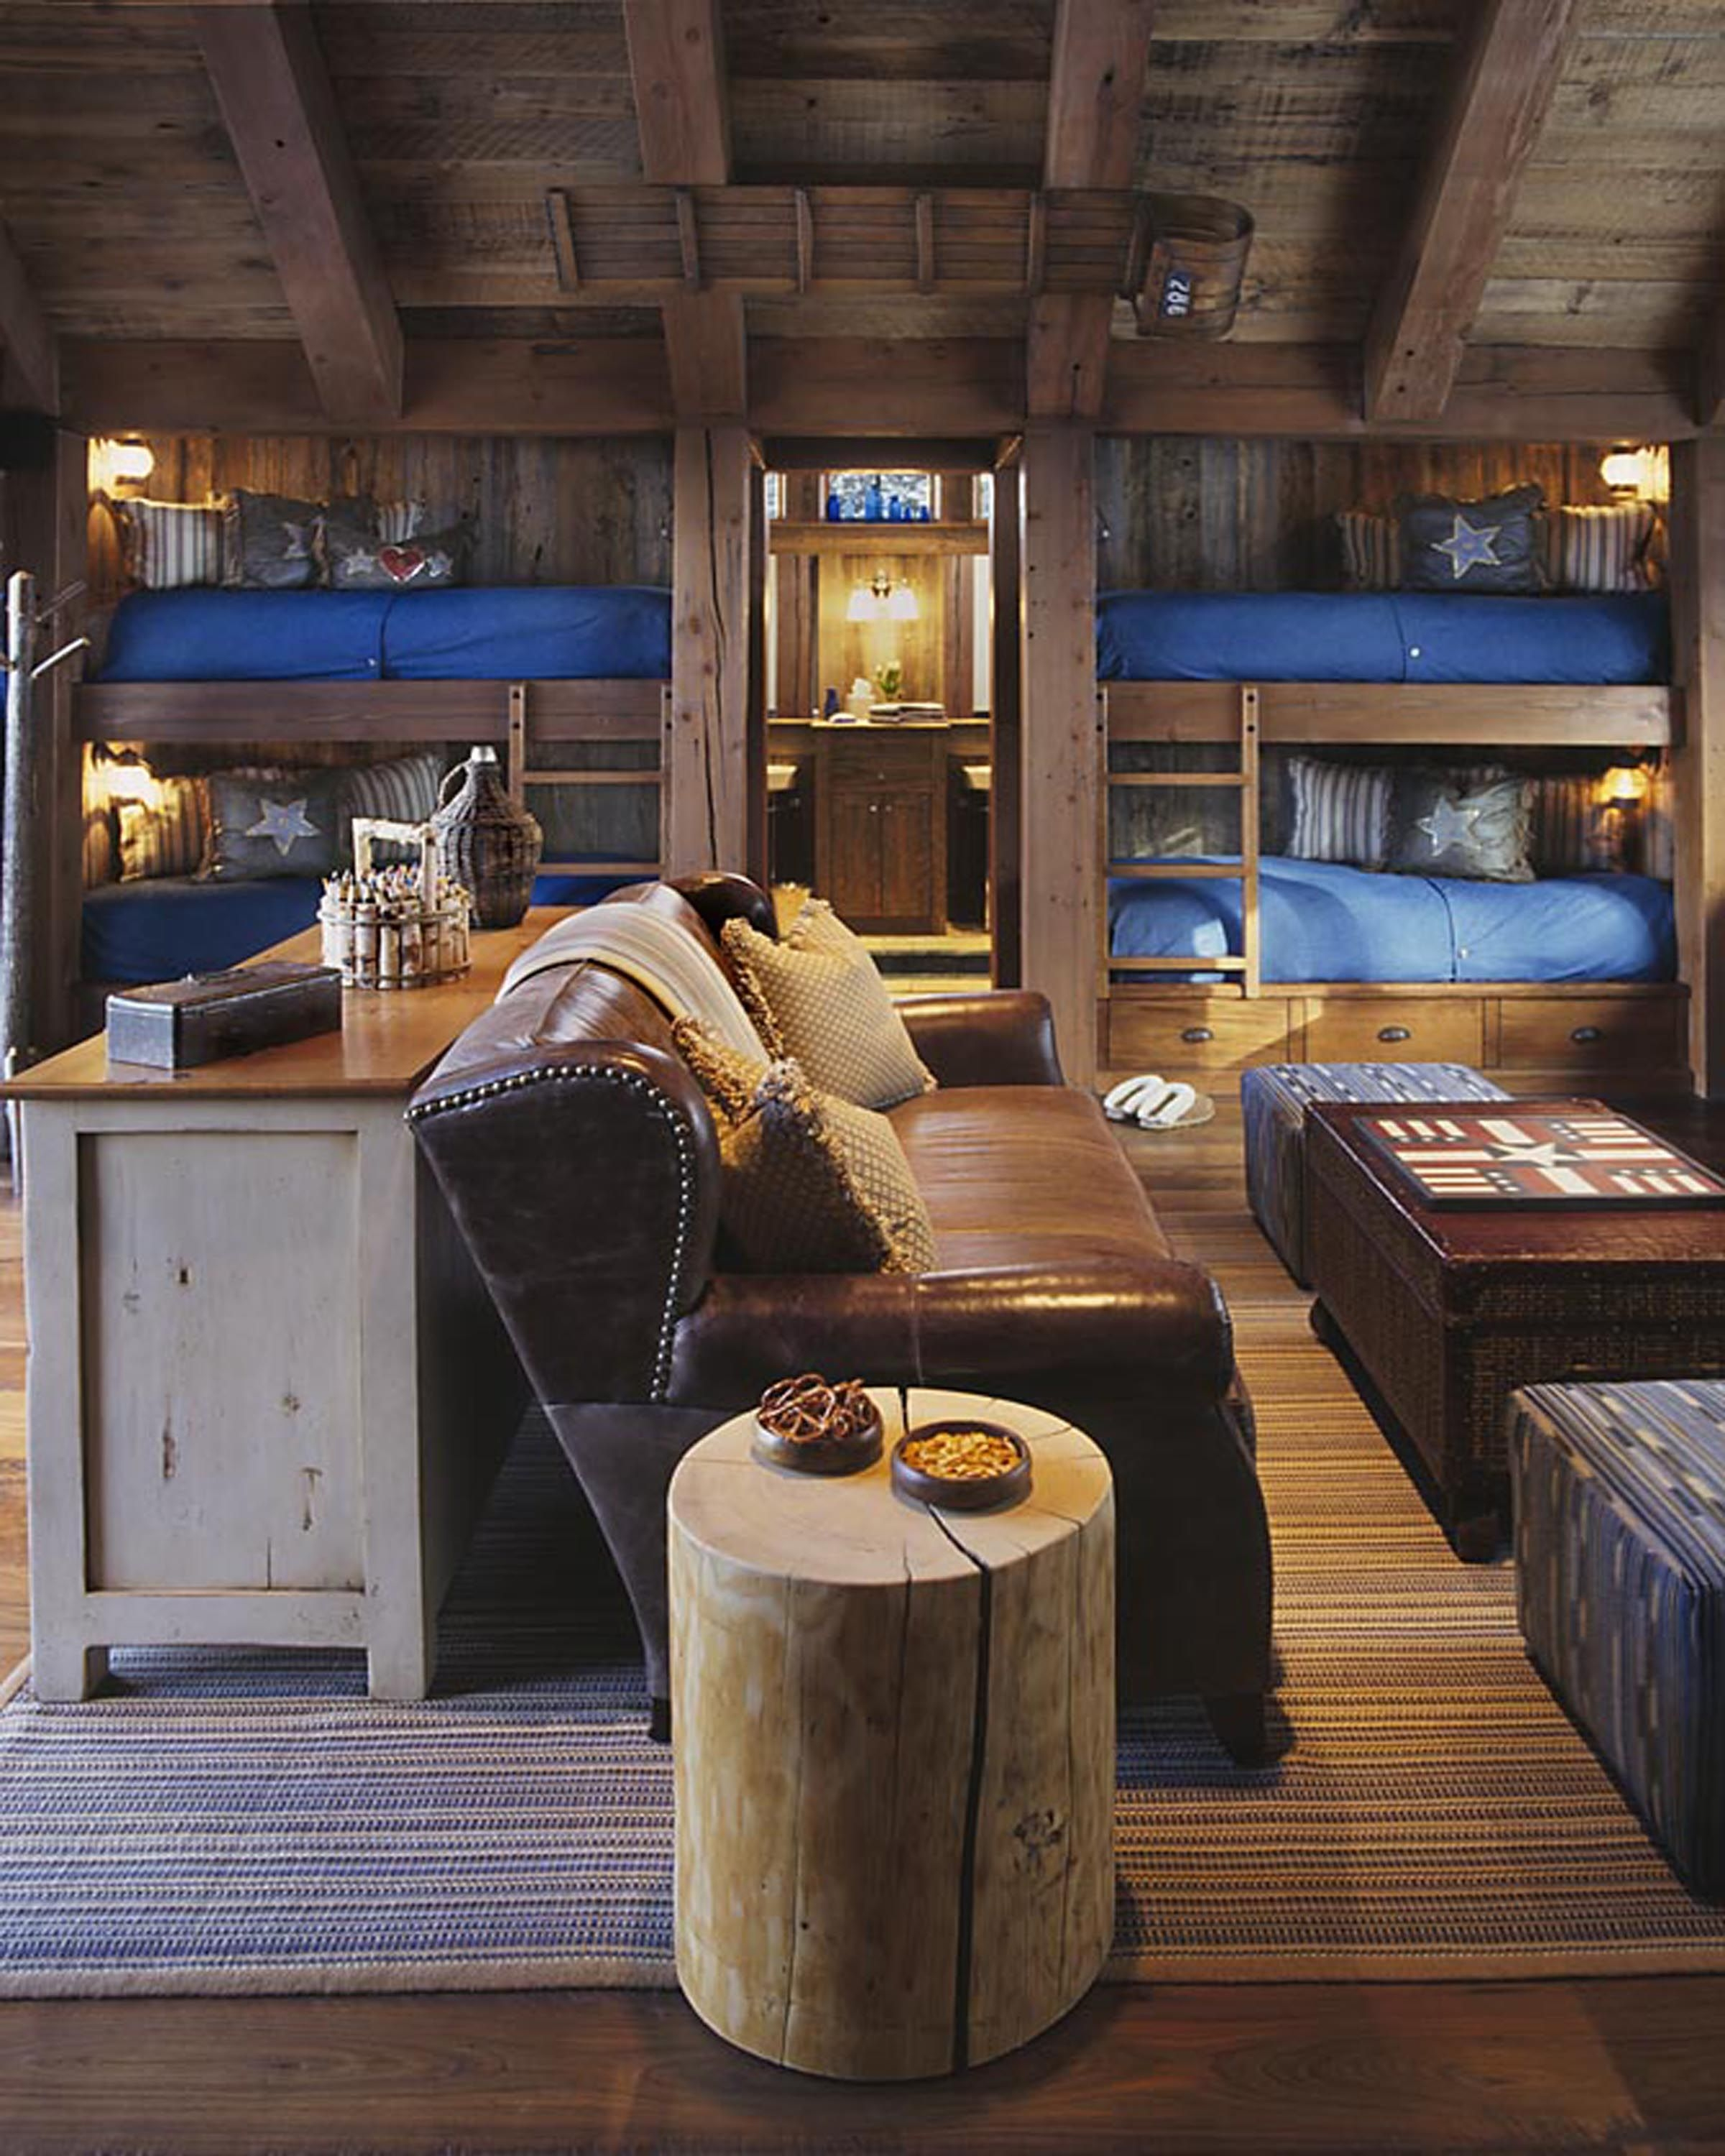 60 Small Mountain Cabin Plans with Loft Awesome Winterwoods Homes Bunk Bed Inspiration Created by Our Interior